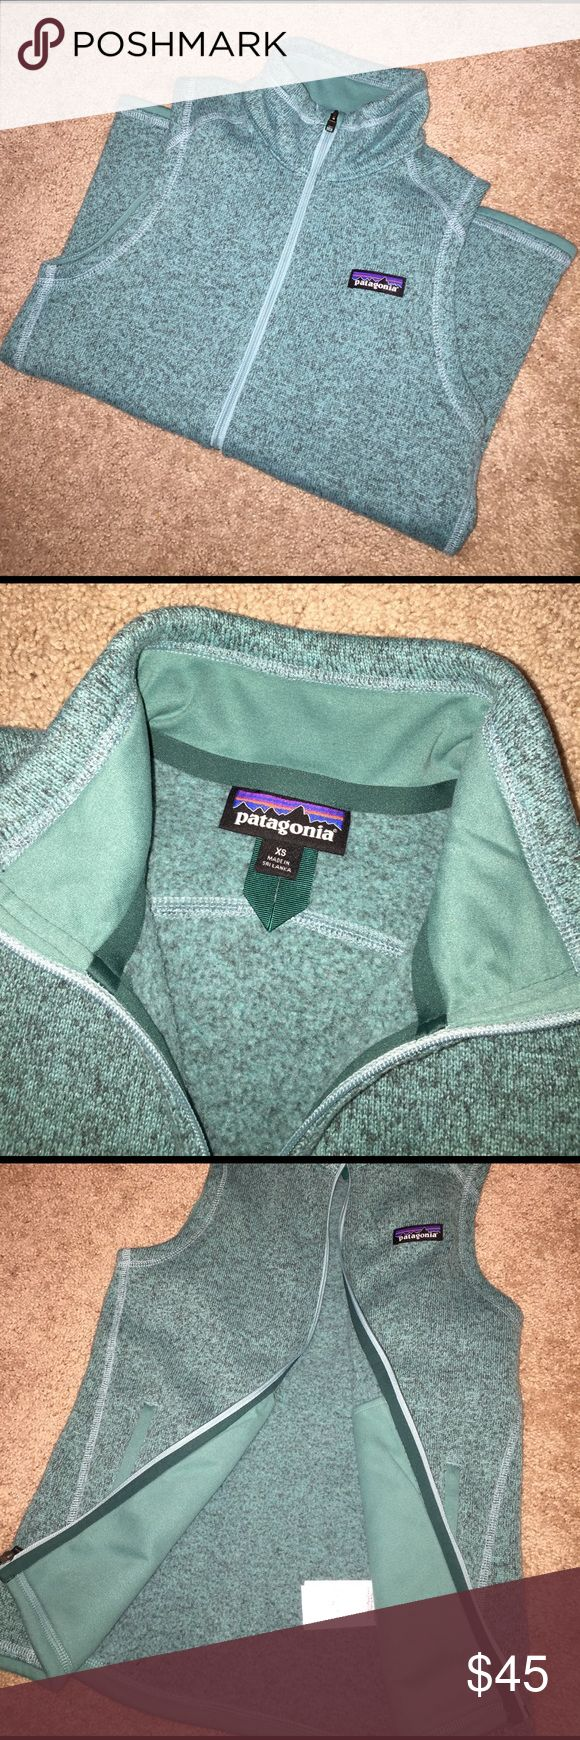 Patagonia Better Sweater Vest This vest is in PERFECT condition! I've only worn it a few times and just recently threw away the tag. It's an XS but will for sure fit a S! I'm a S and it fits perfectly! If you have any questions please ask! 😃 Patagonia Jackets & Coats Vests